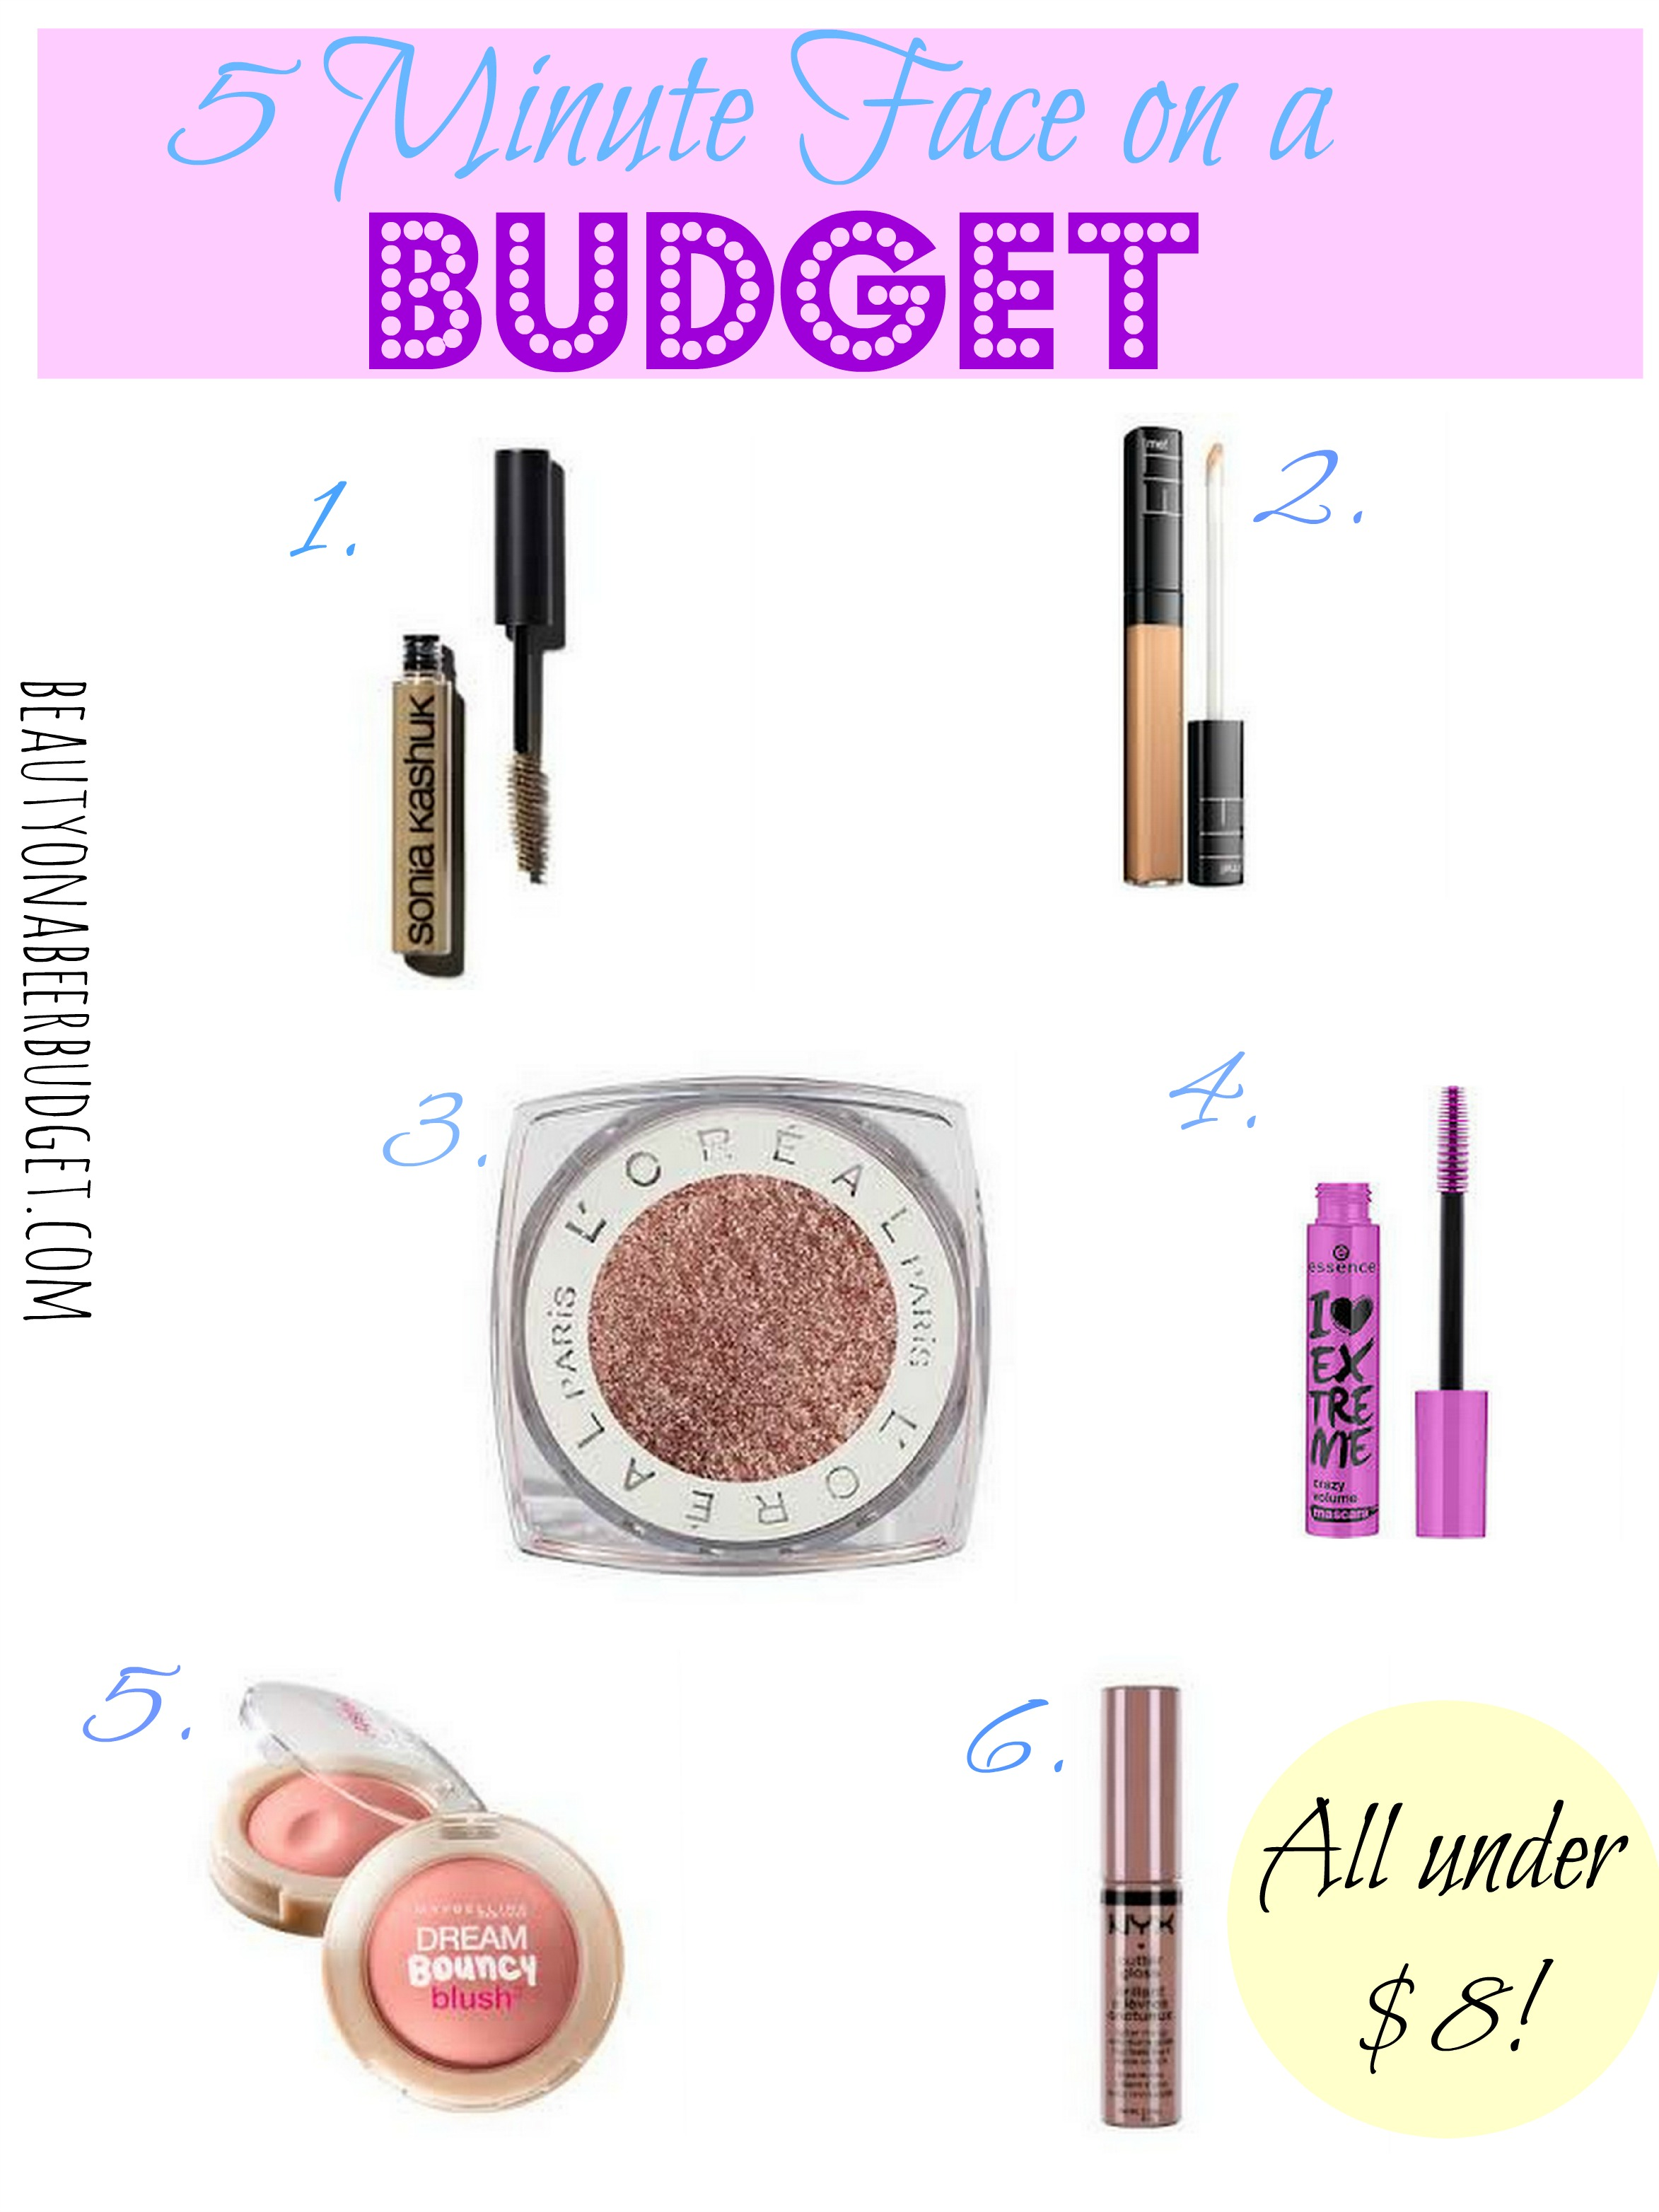 5 Minute Face Drugstore Edition Beauty On A Beer Budget